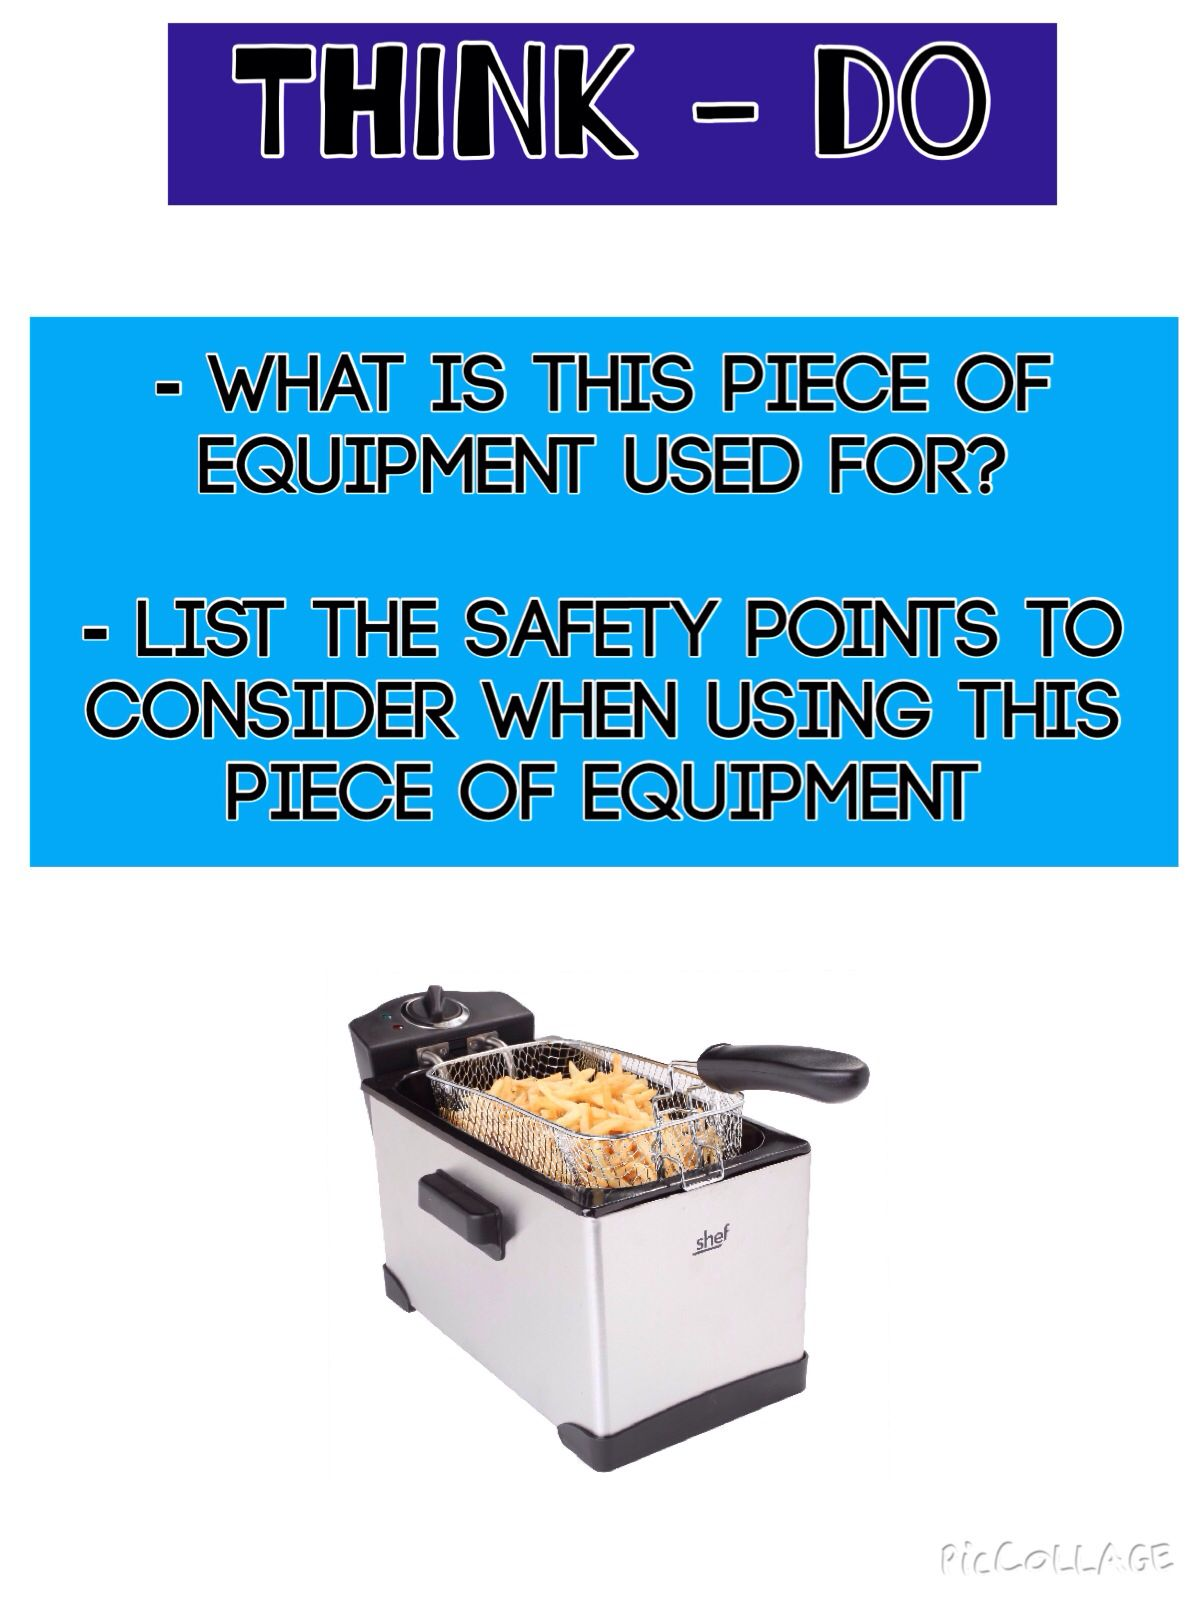 Equipment | revision tools | Pinterest | Food technology, Catering ...